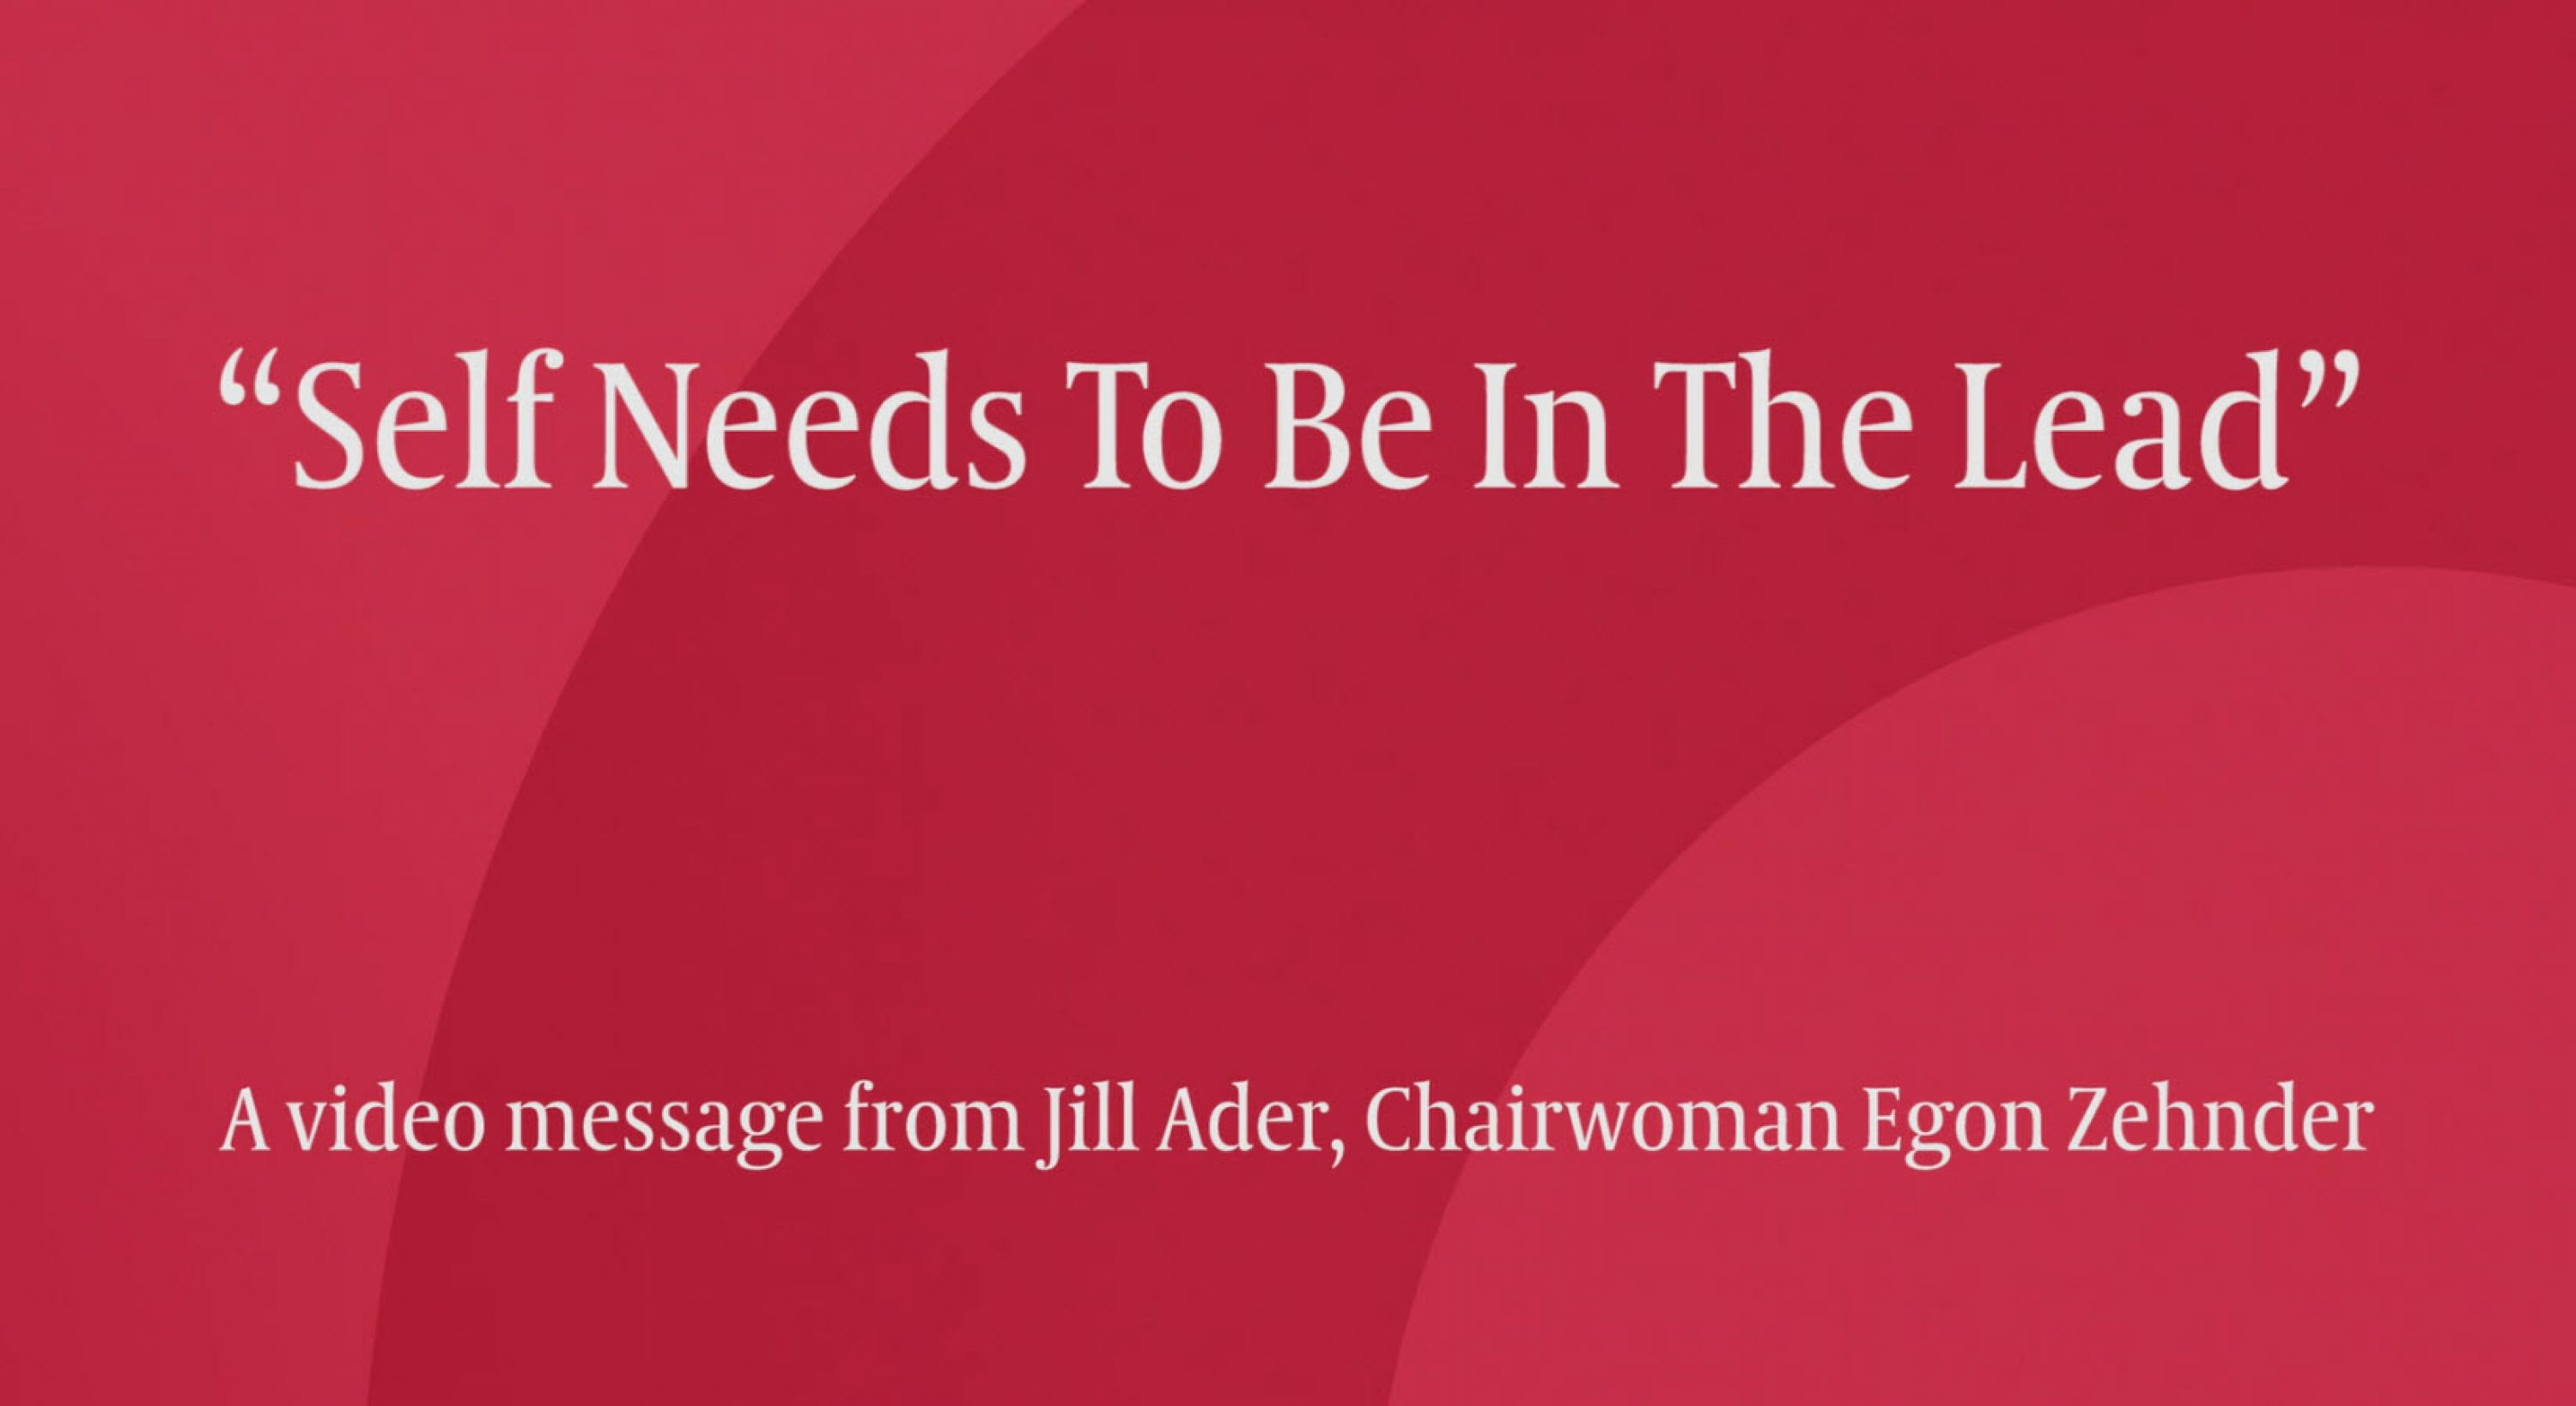 Watch Chairwoman Jill Ader's message to leaders